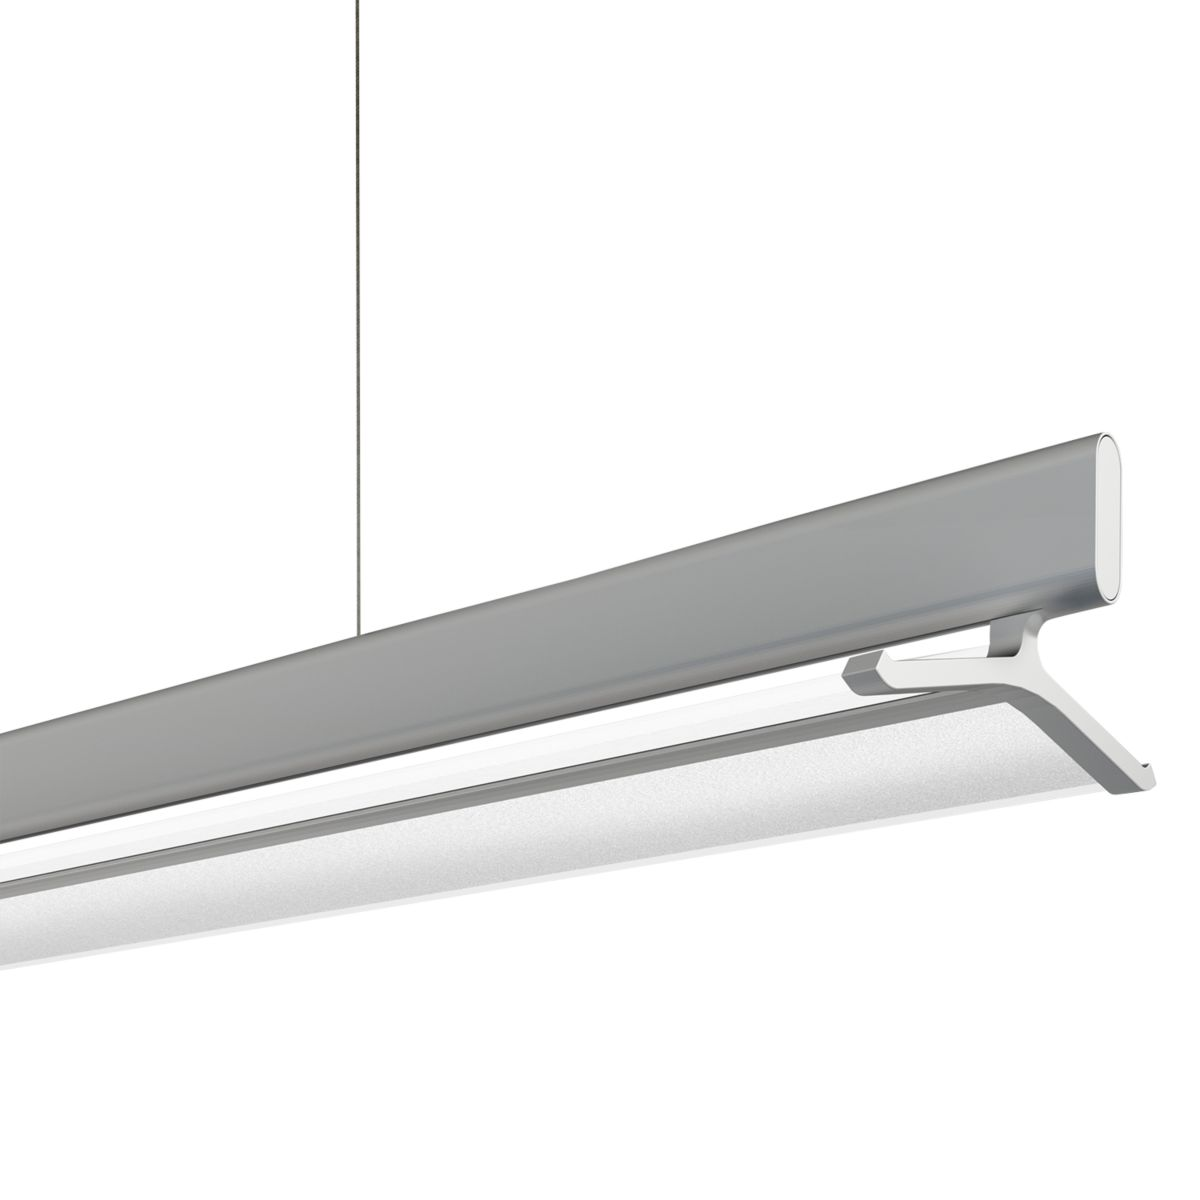 Converge Suspended Direct Indirect Luminaire